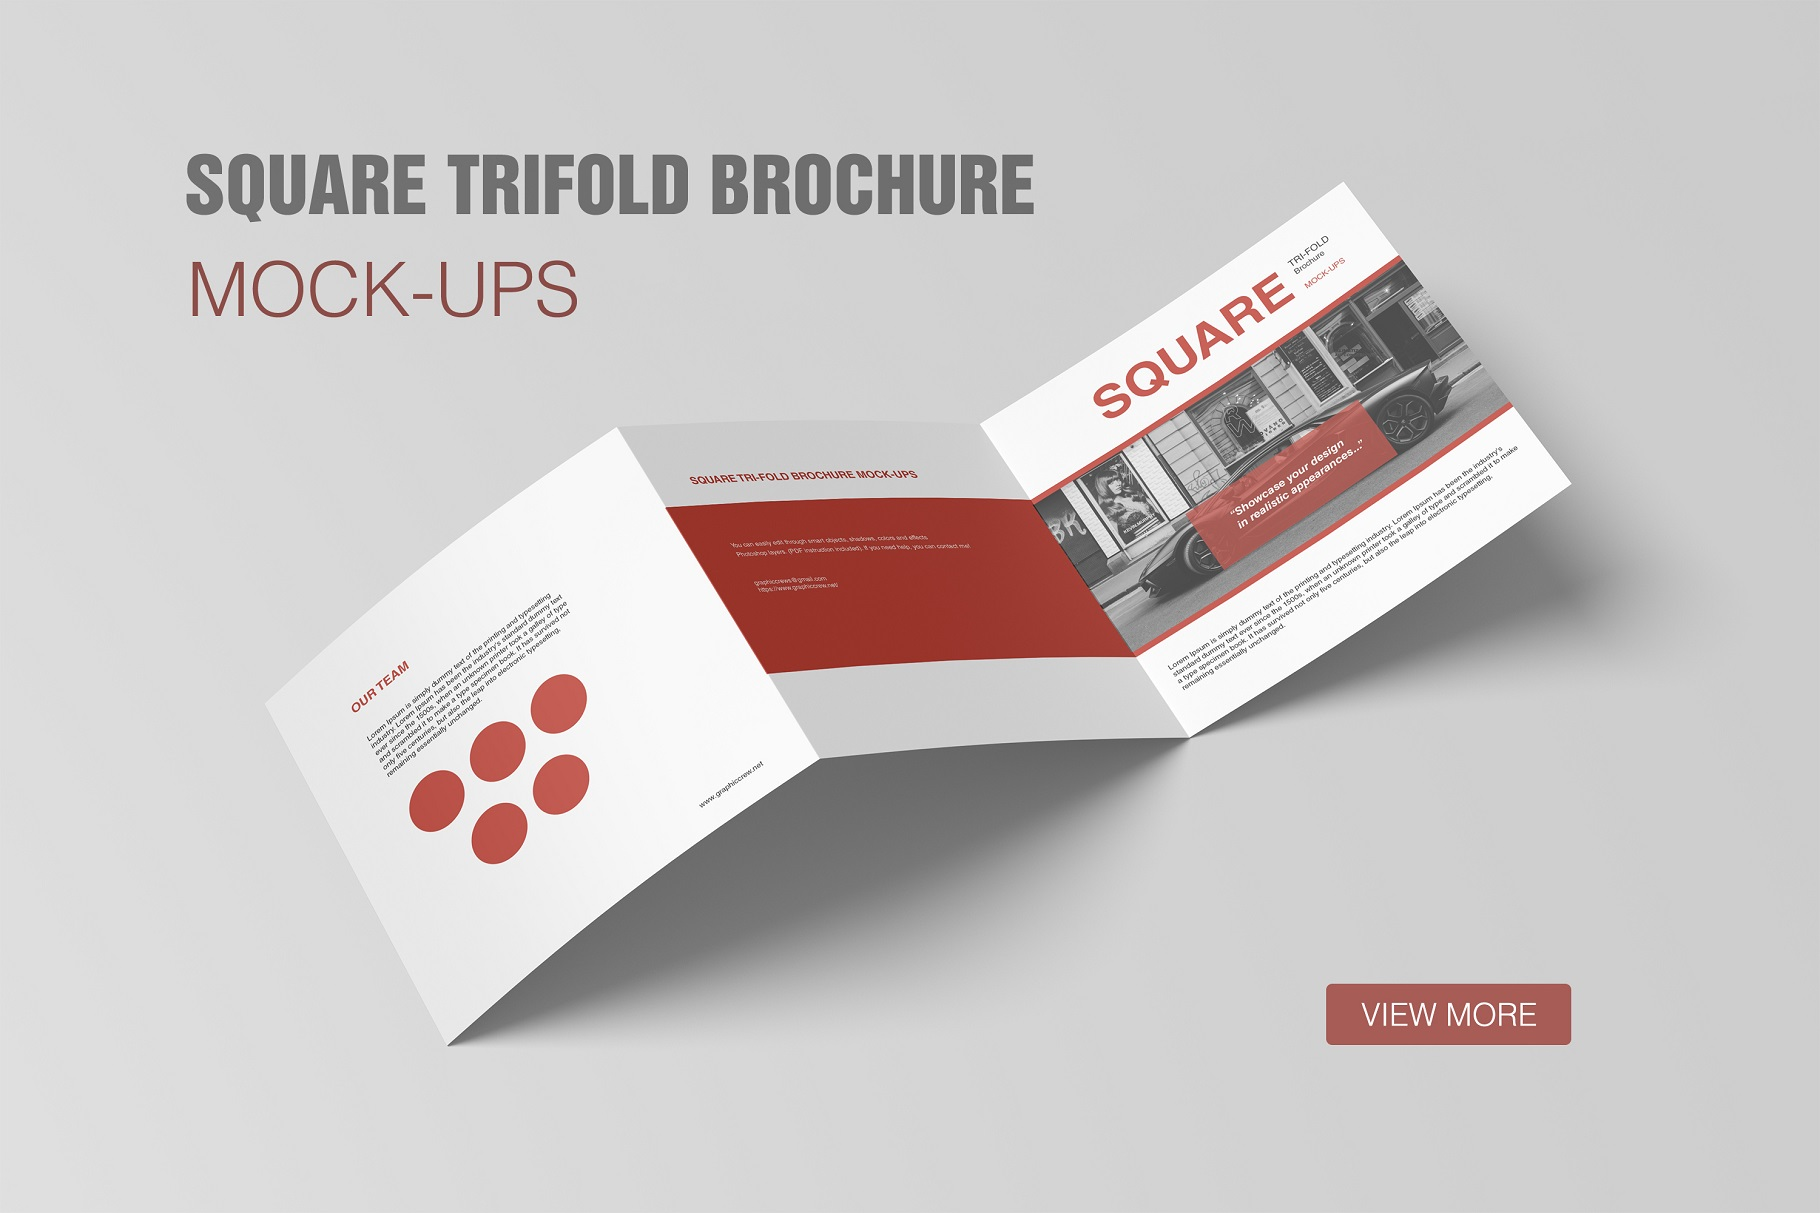 Download Free Square Trifold Brochure Mockups Graphic By Graphiccrew for Cricut Explore, Silhouette and other cutting machines.